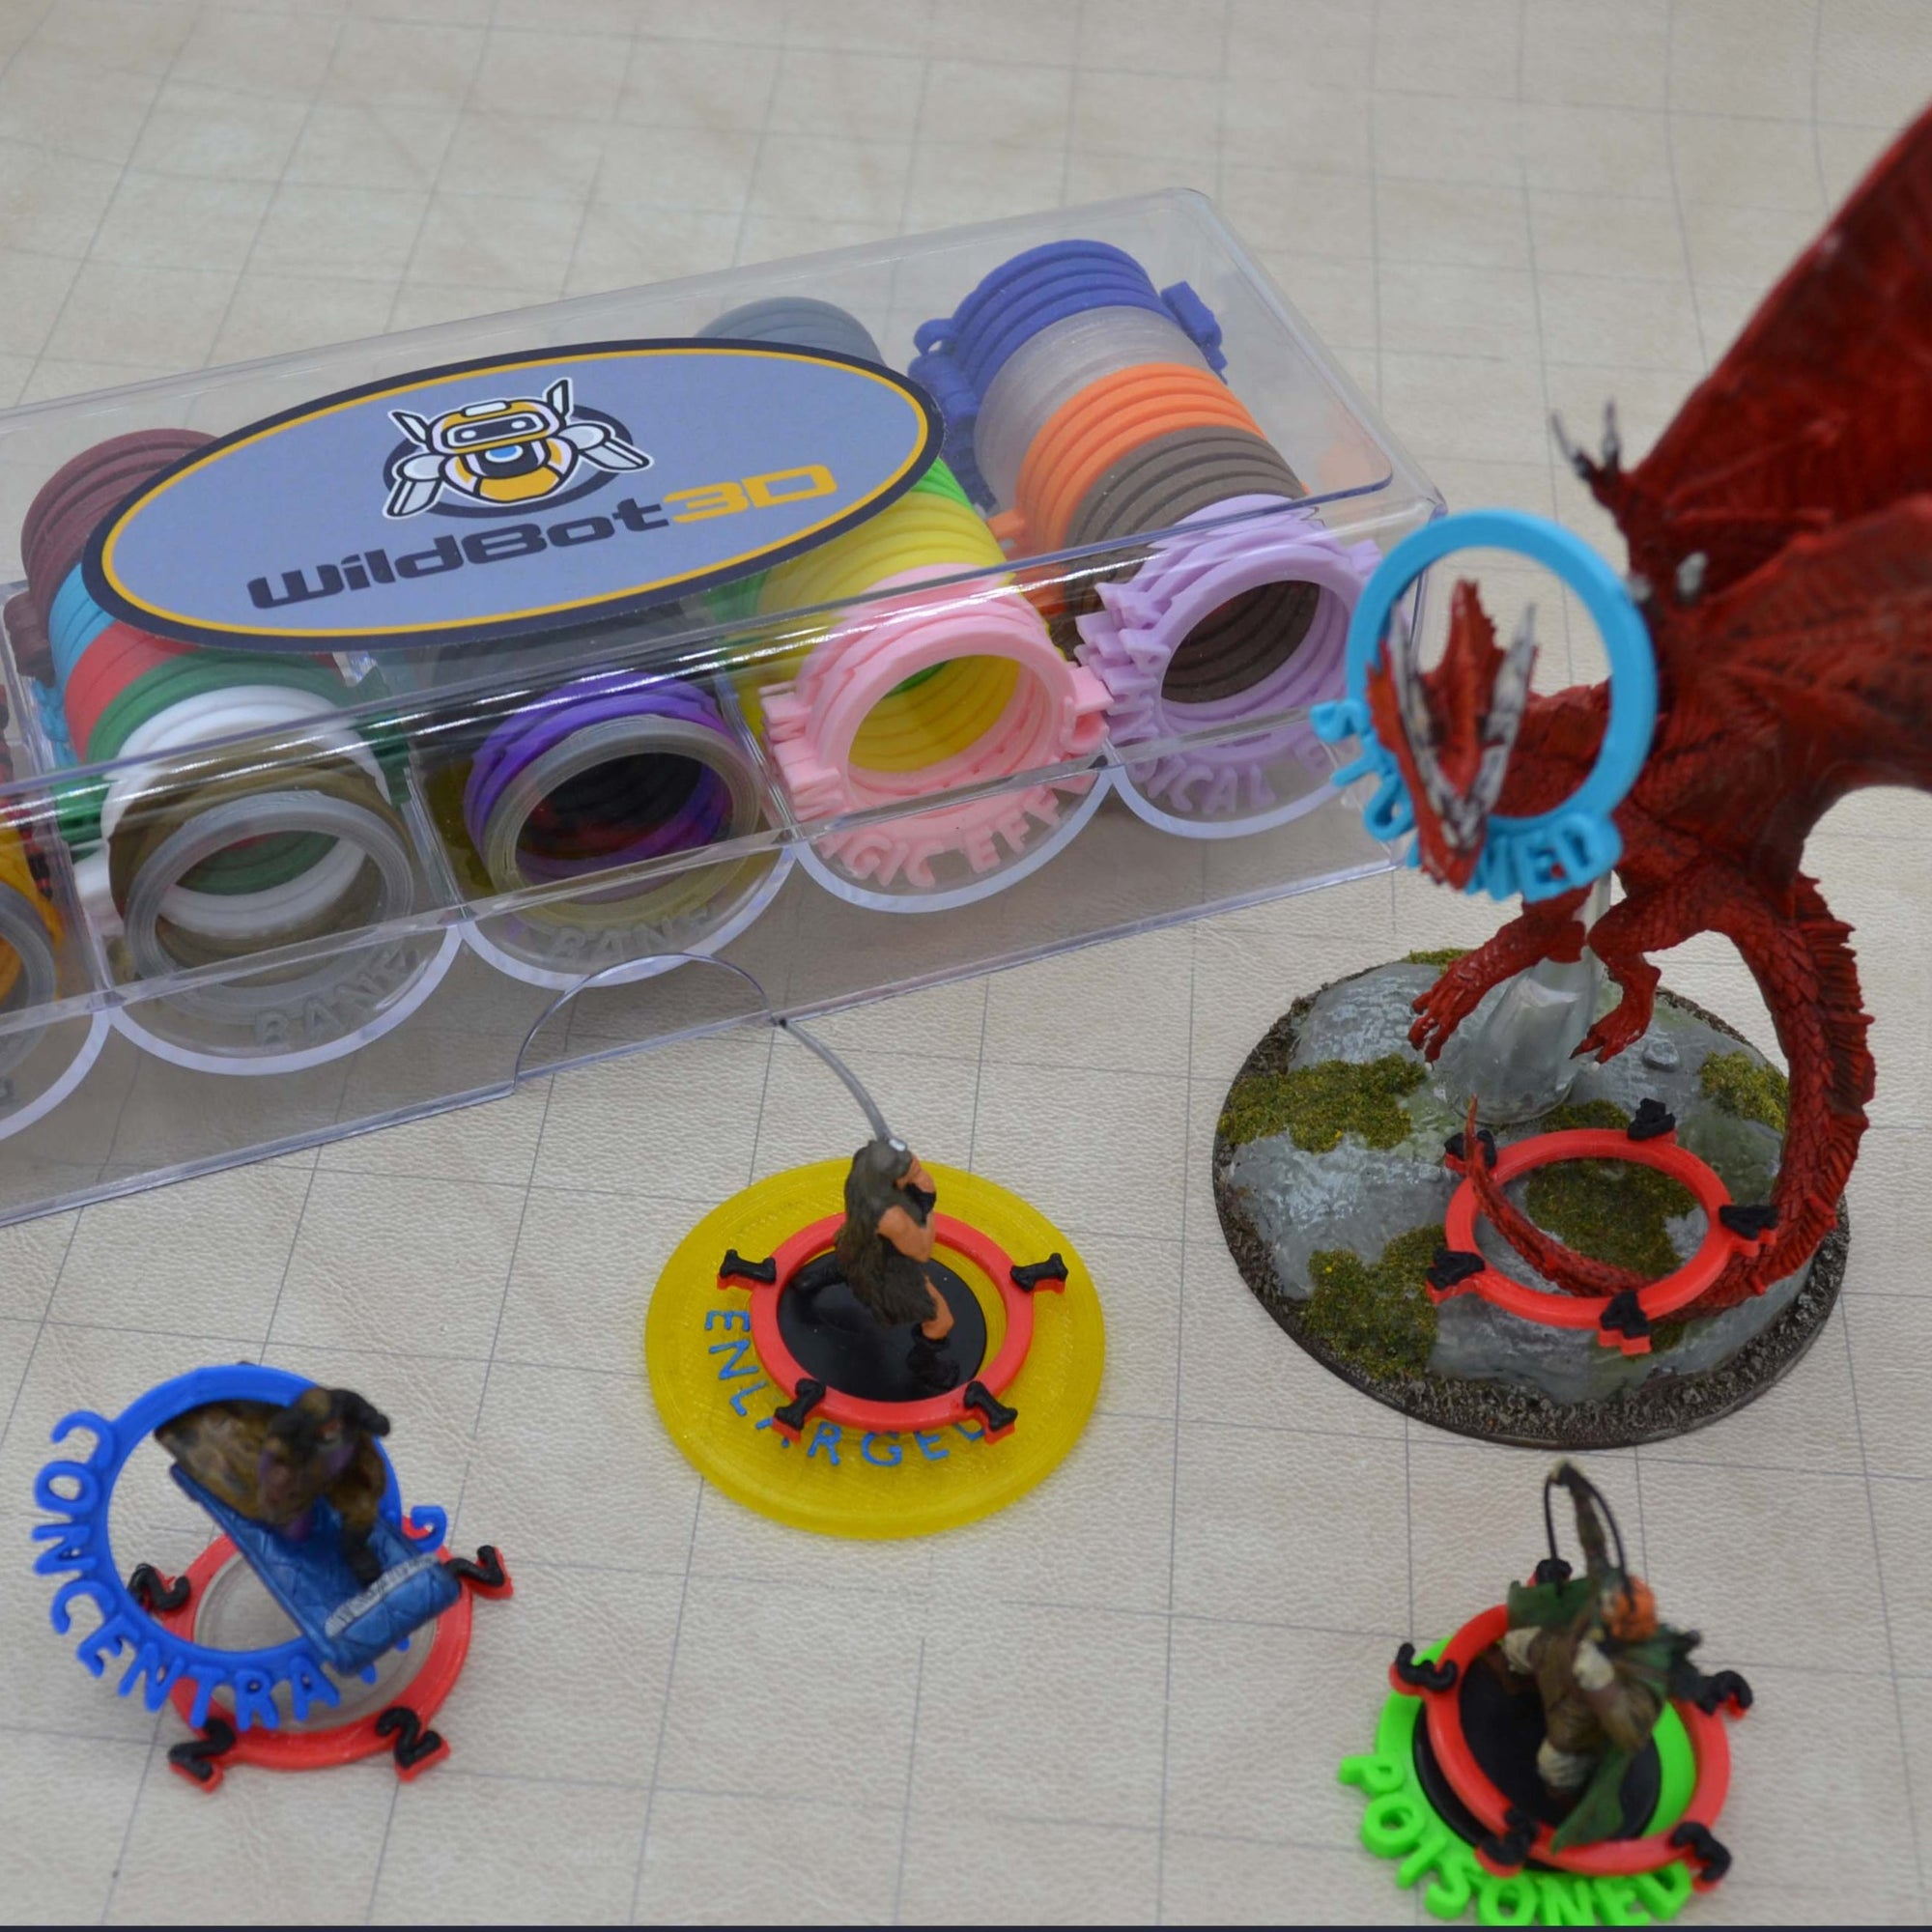 *Limited Edition* Wildbot3D Condition + Initiative Rings: Master's Set - Wildbot3d